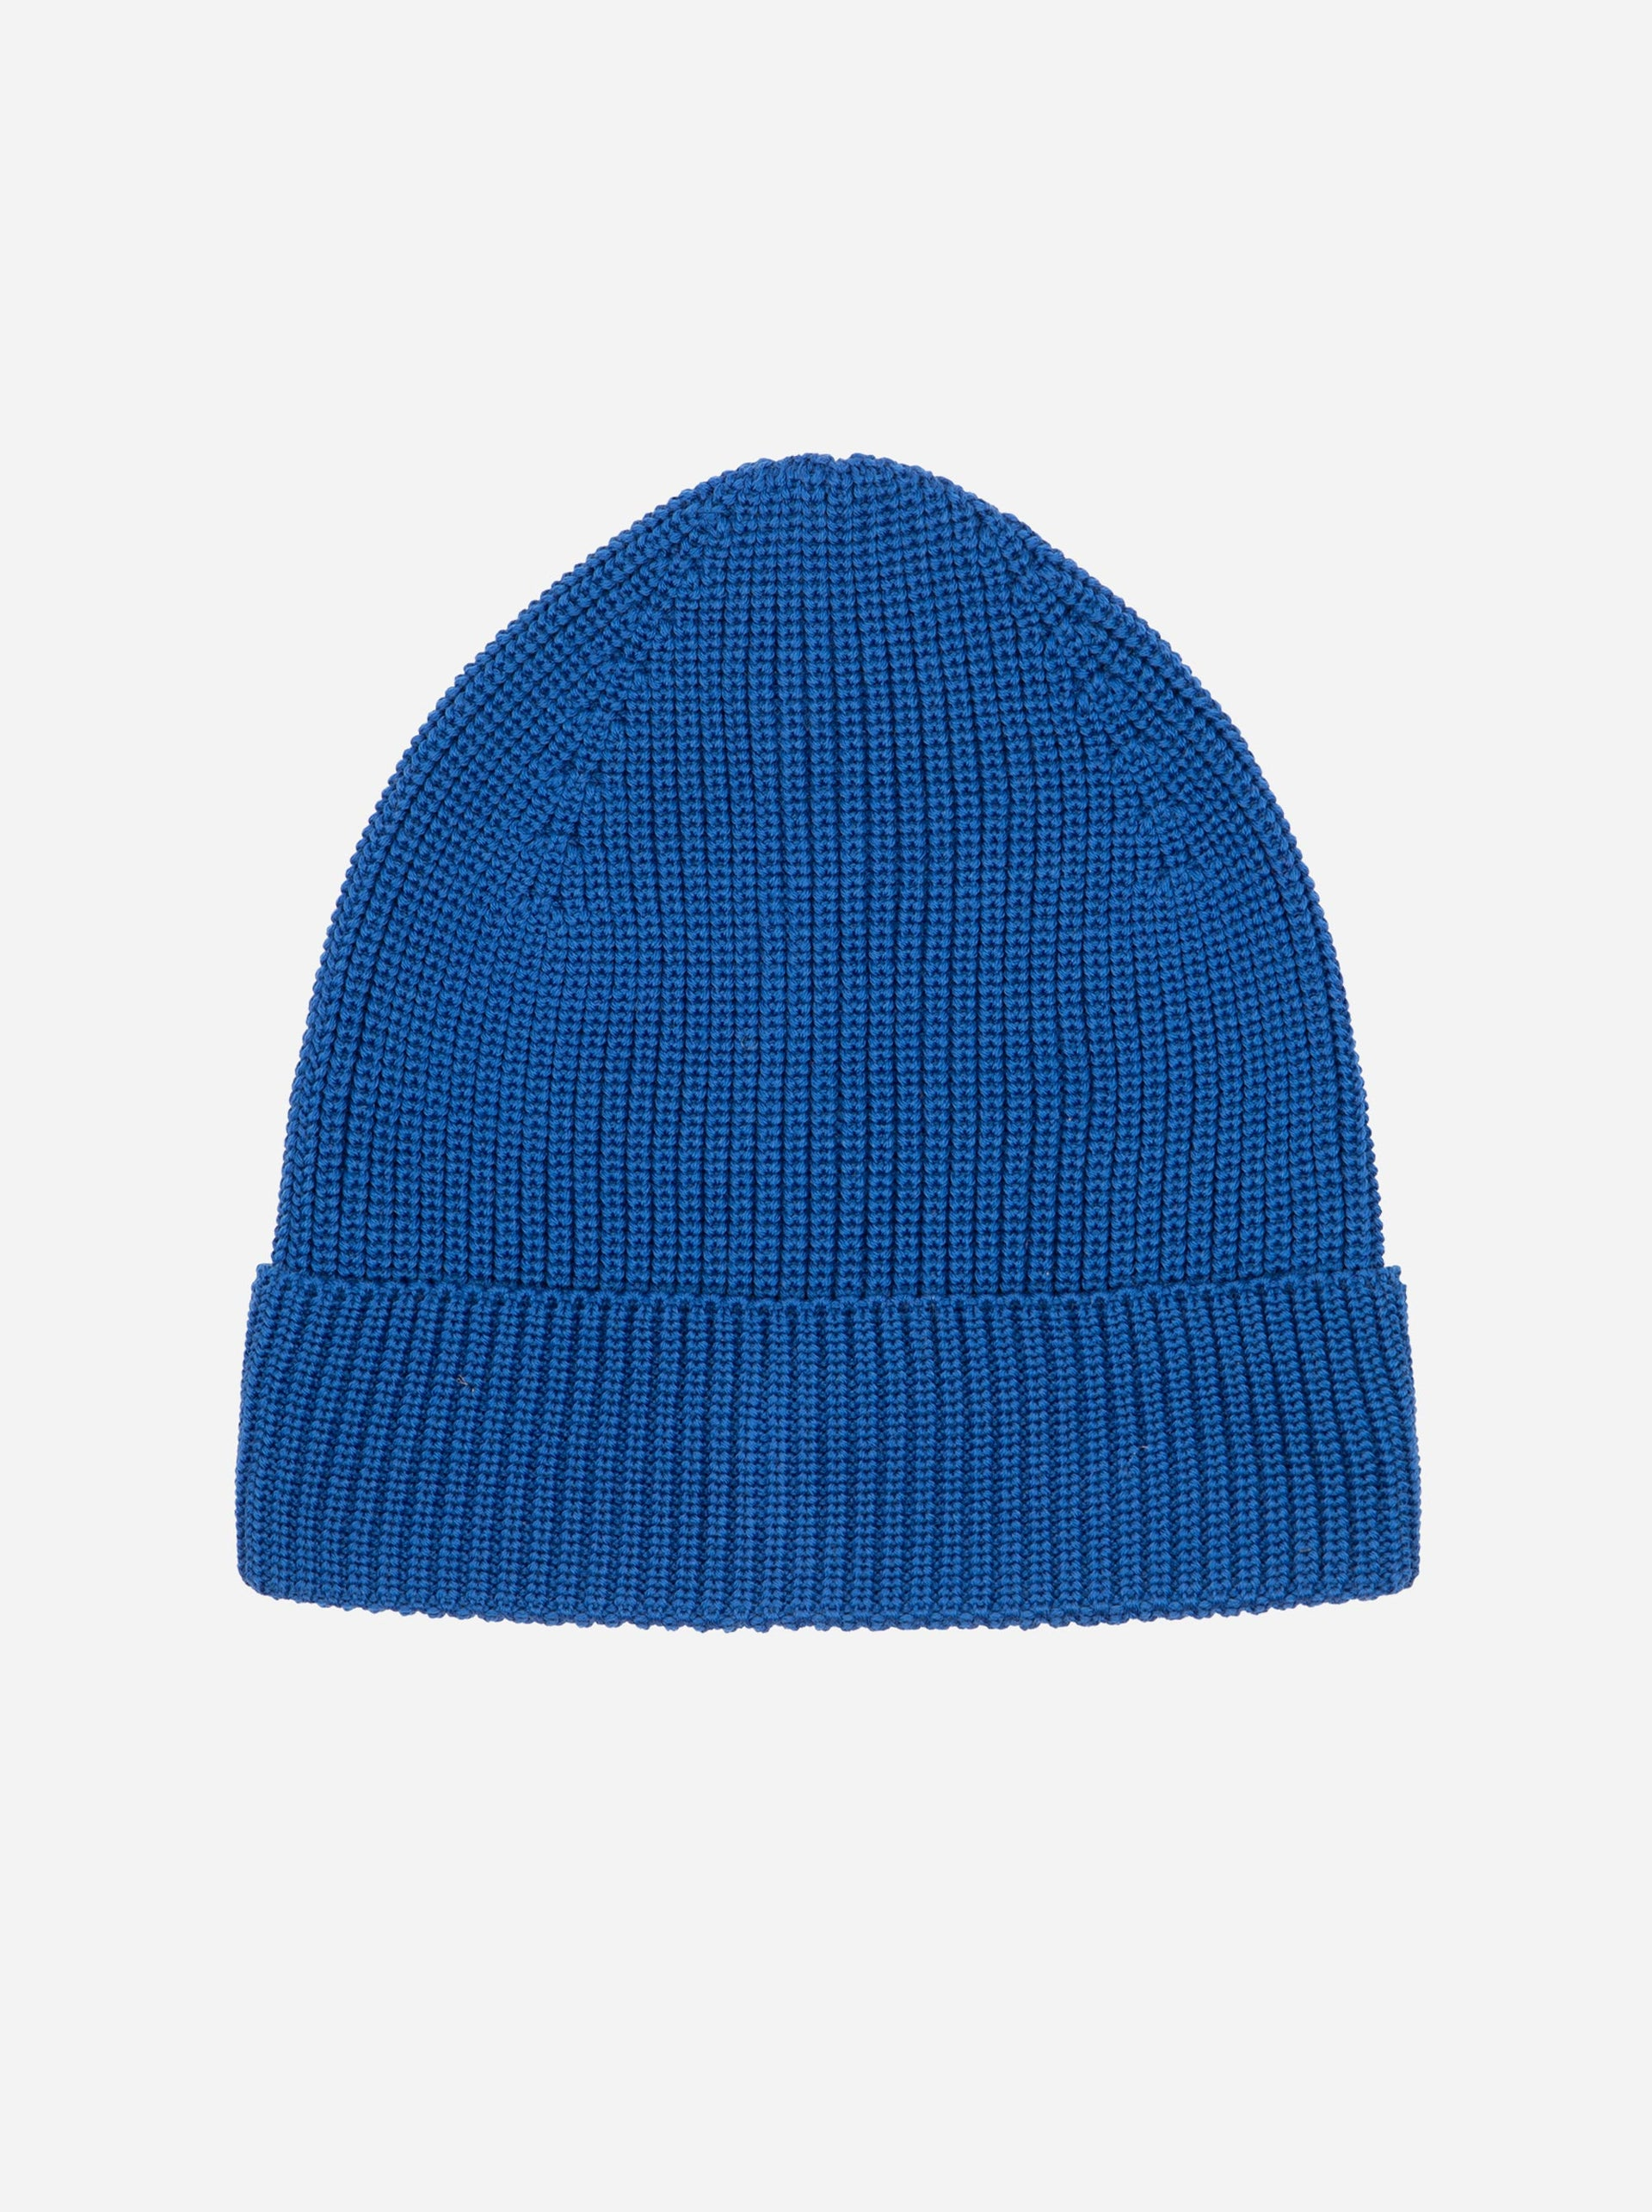 The Beanie - Cobalt blue